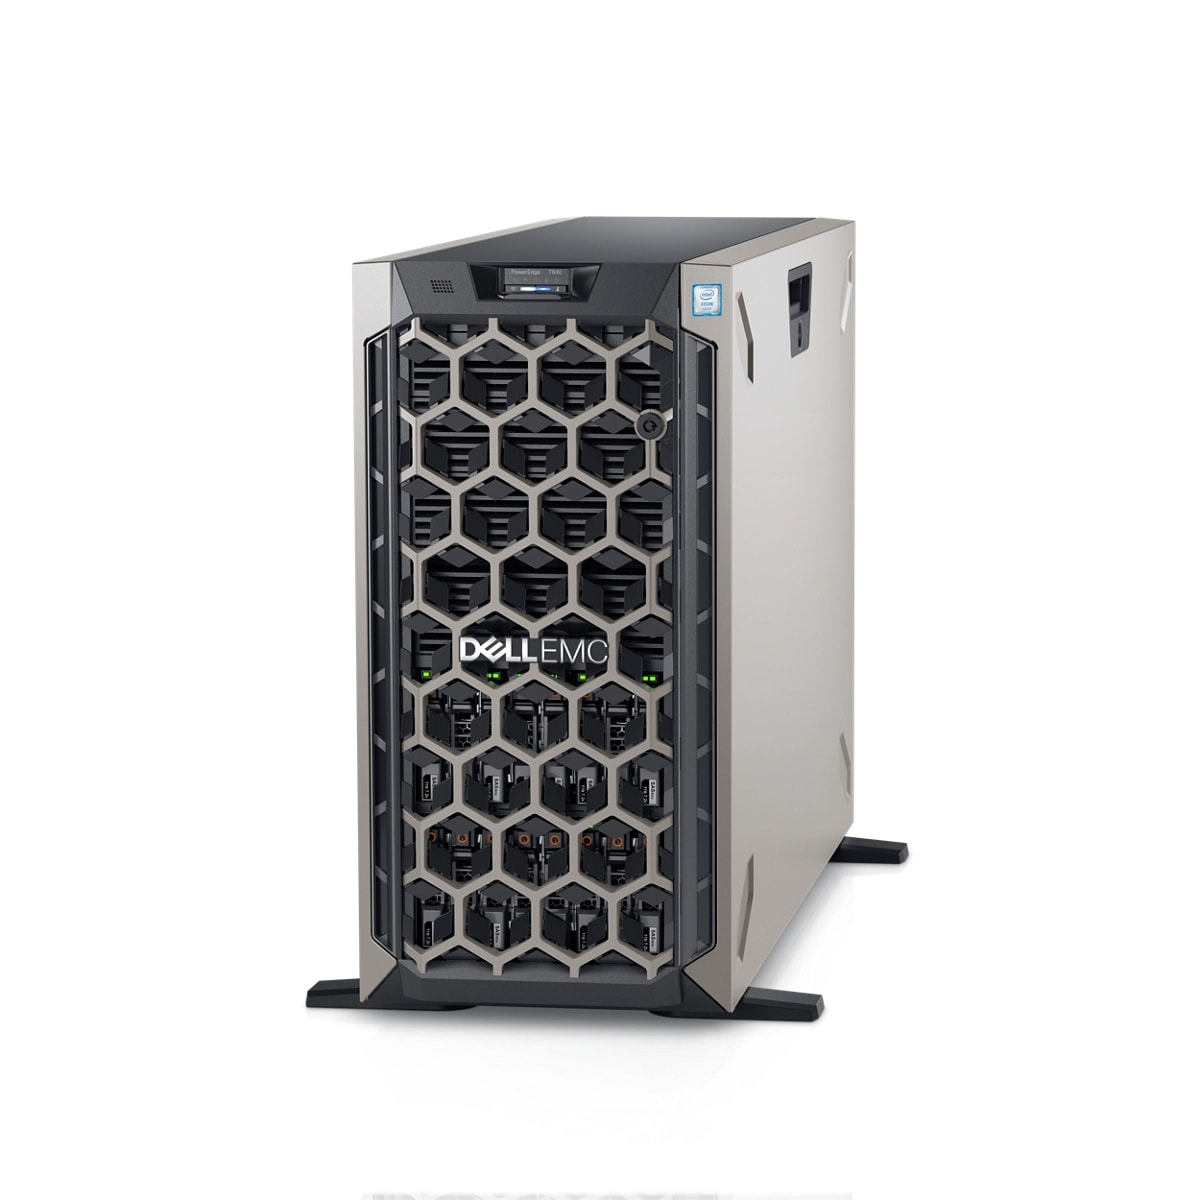 PowerEdge T640 Tower Server